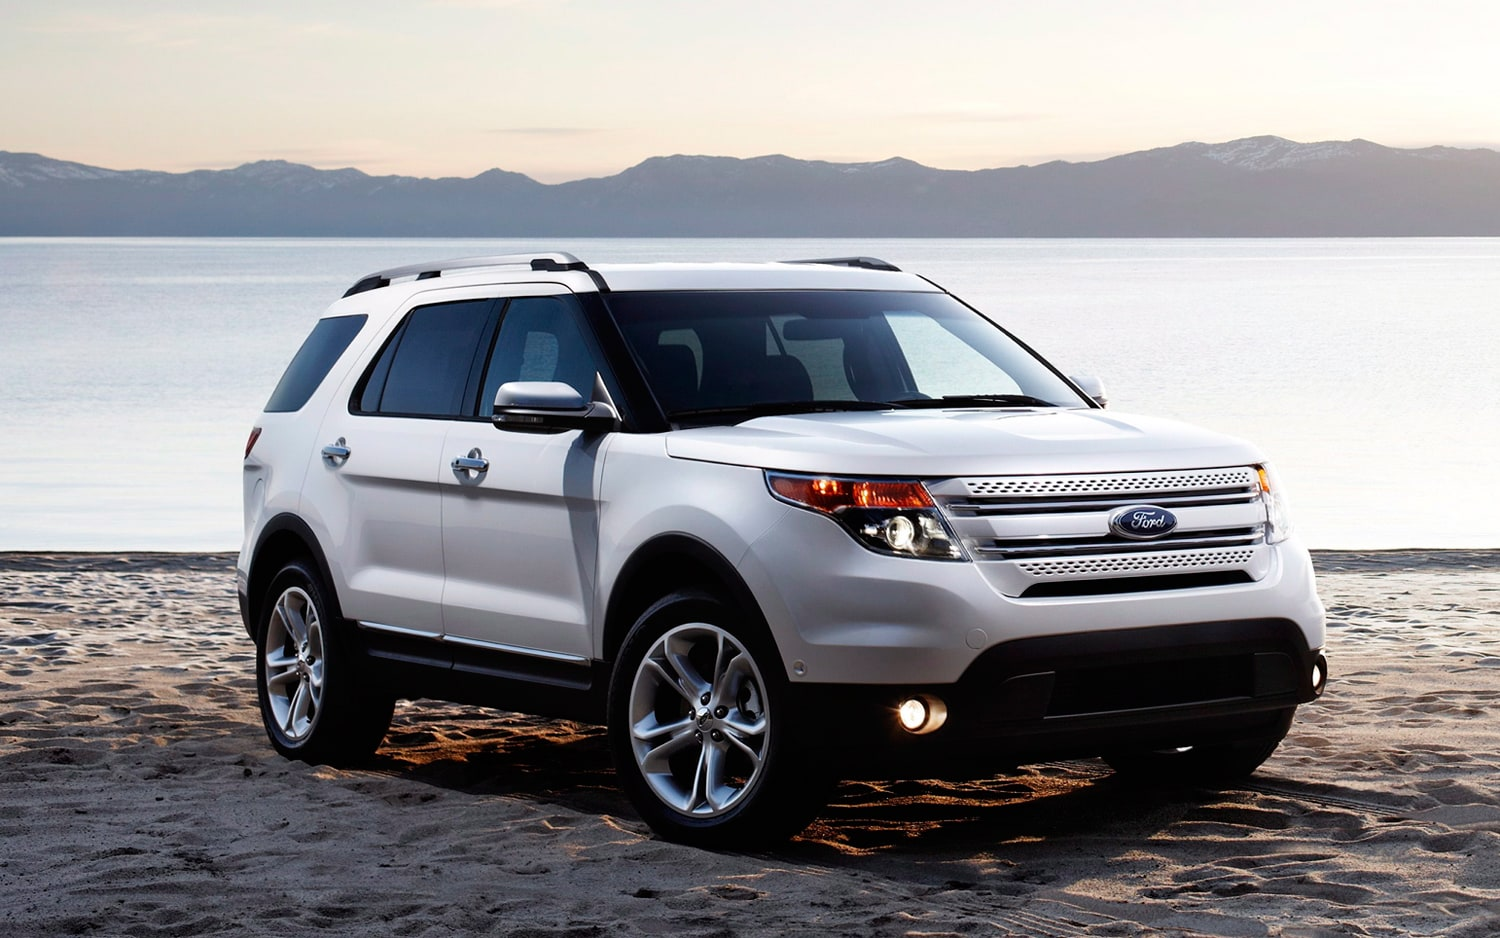 If youu0027re in the market for a truck van or SUV come to your local La Plata Ford dealer that has exactly what you need to carry your load. & Ford Dealer La Plata MD | Waldorf Ford Dealership markmcfarlin.com